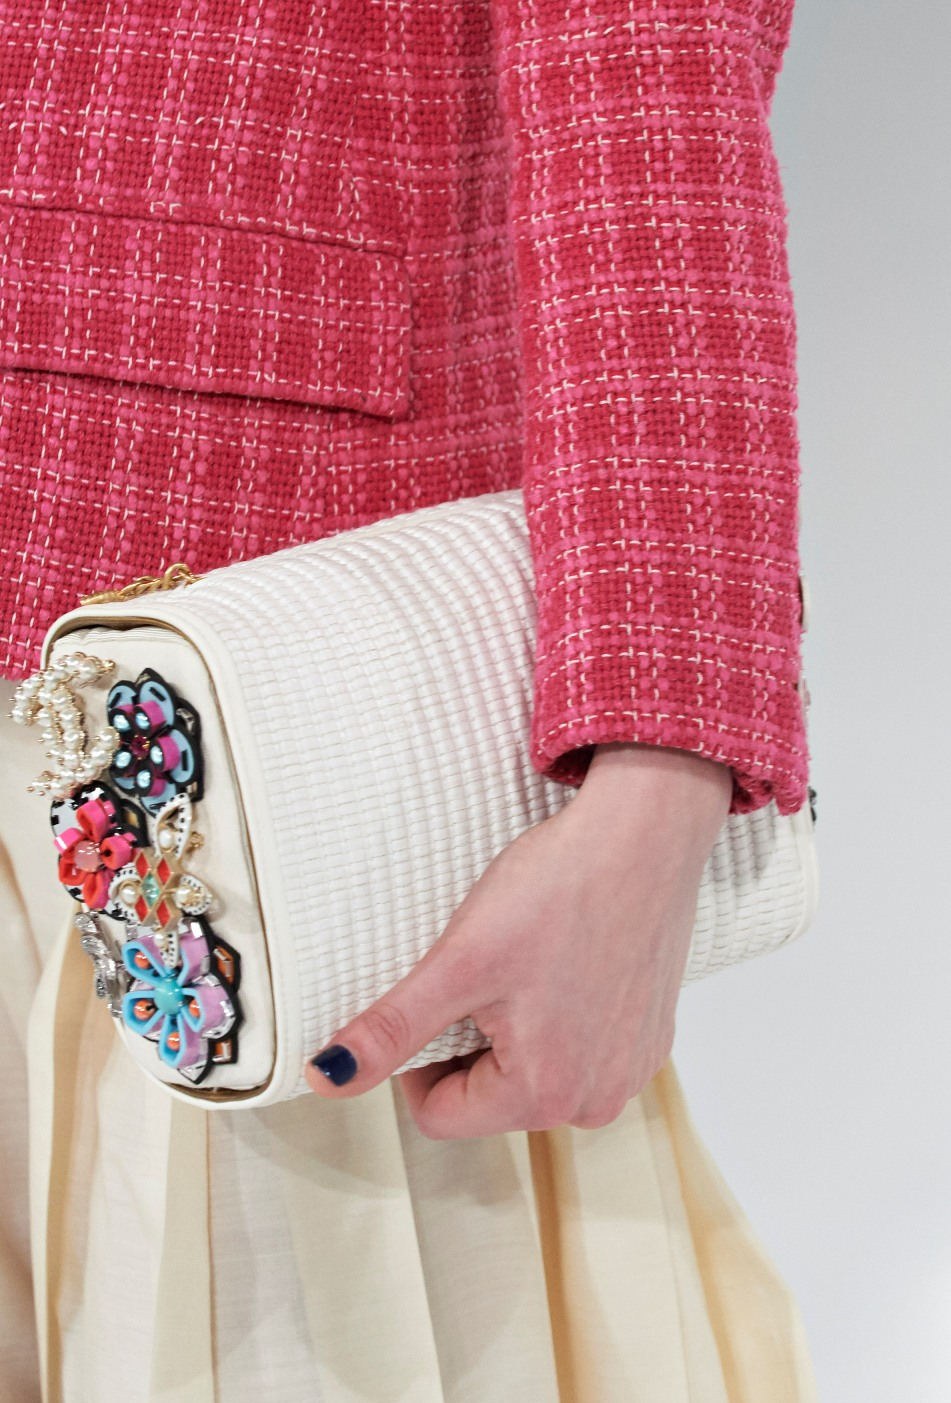 chanel-seoul-resort-cruise-2016-bags-accessories-14  702270289255f